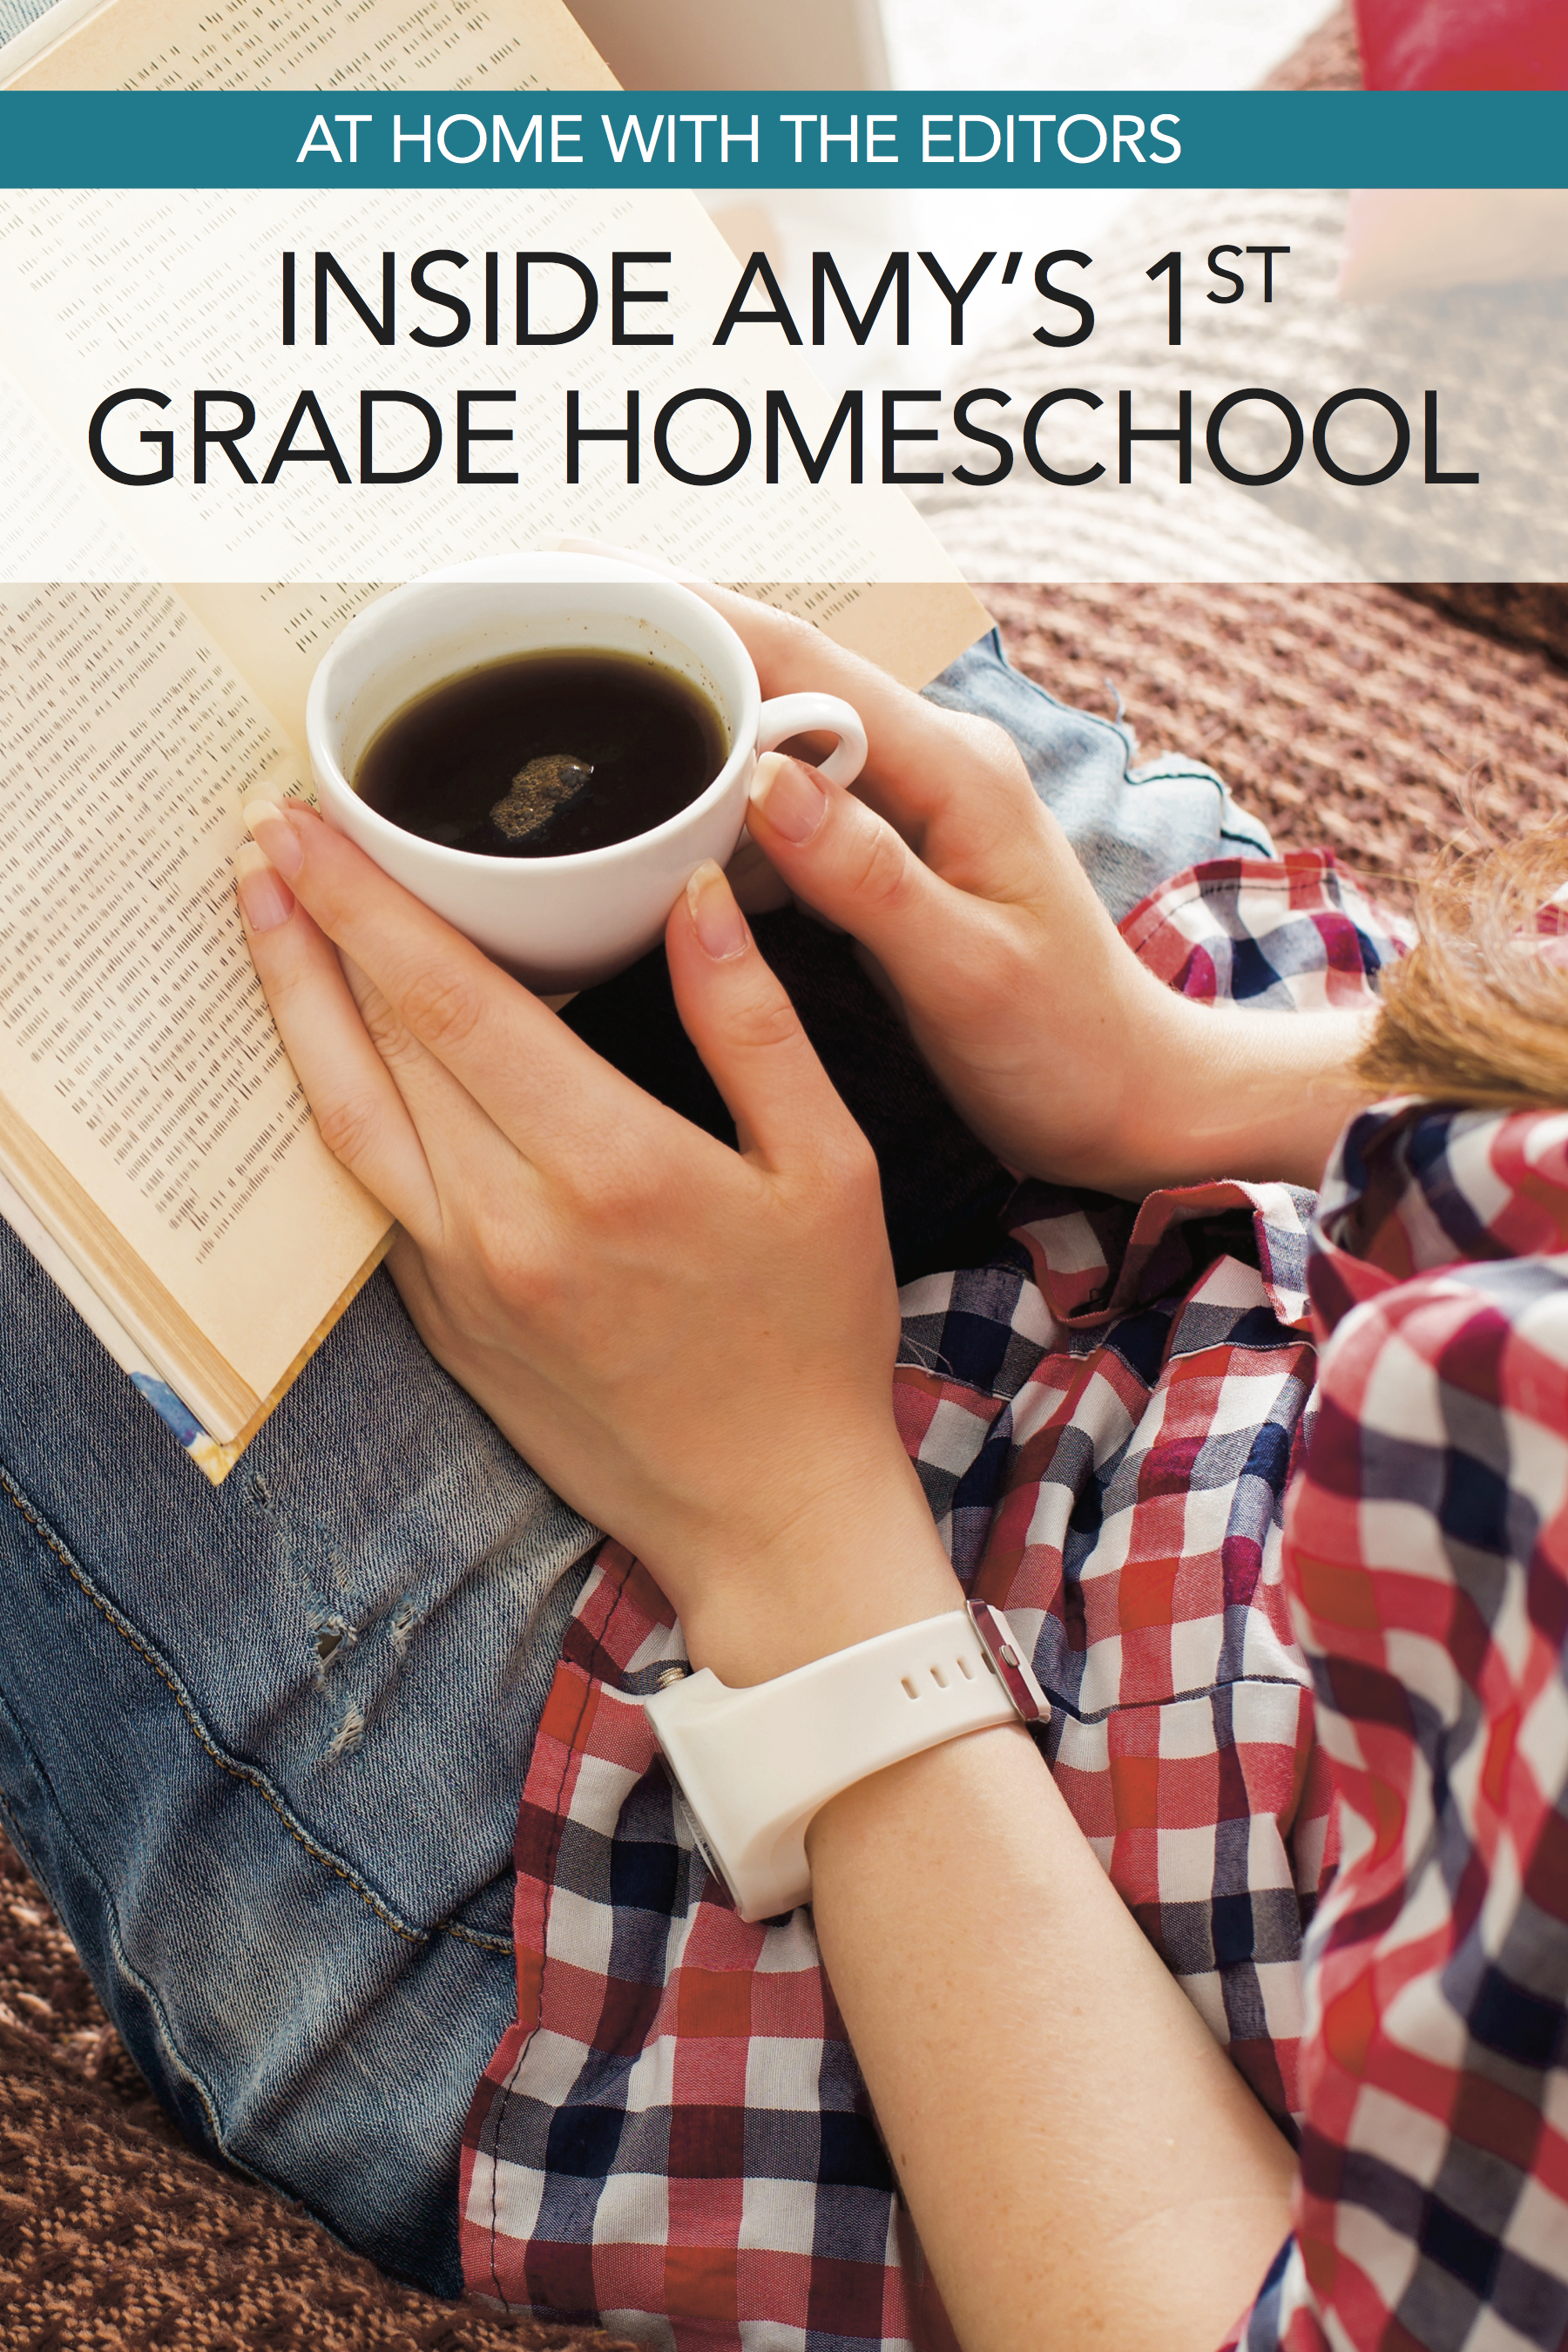 At Home with the Editors: Amy's 1st Grade Homeschool